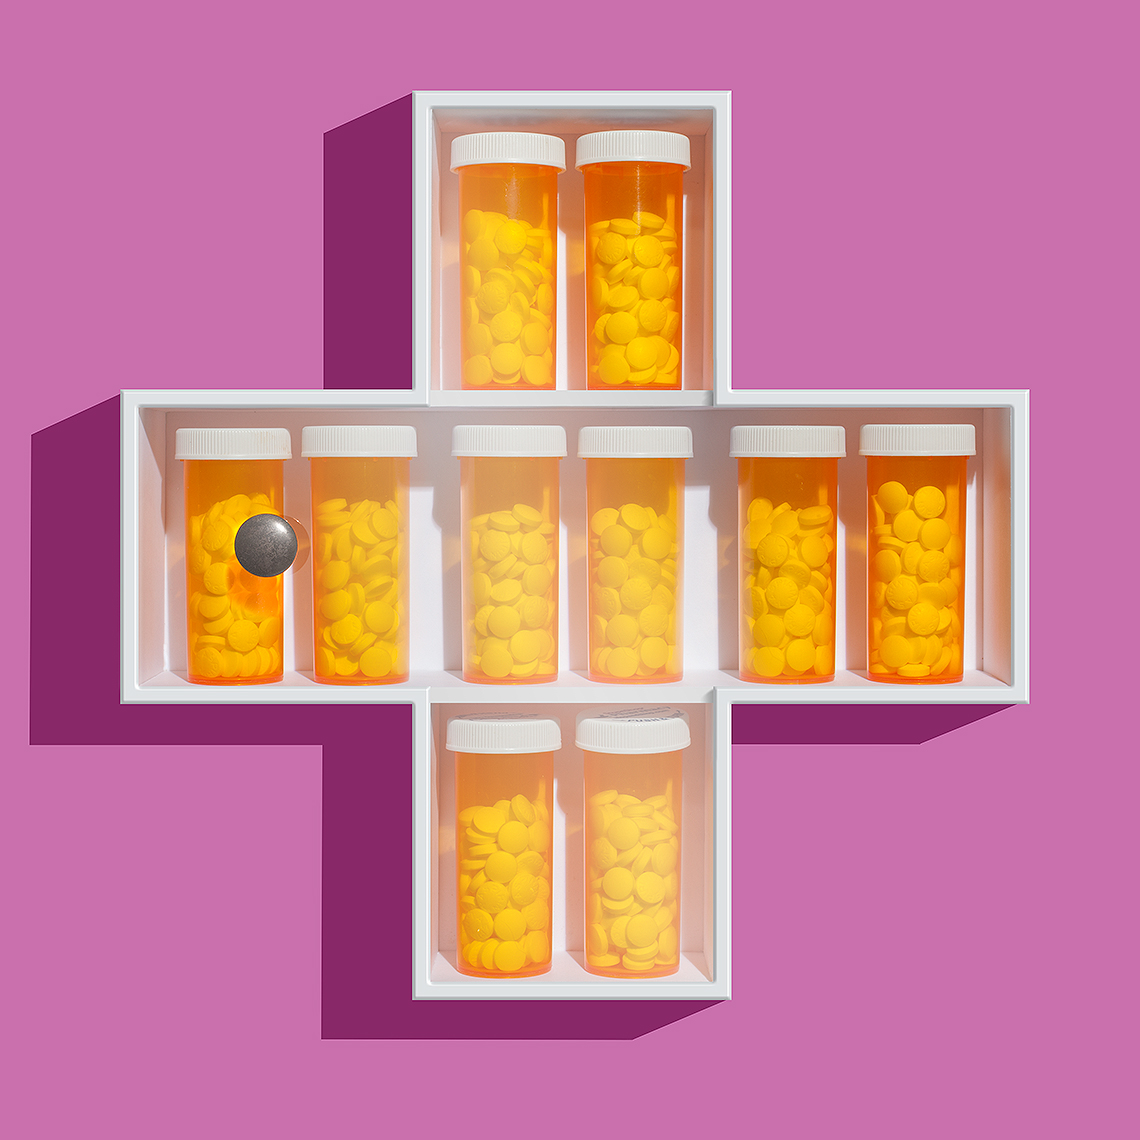 Prescription drugs medicine chest photo-illustration by John Kuczala